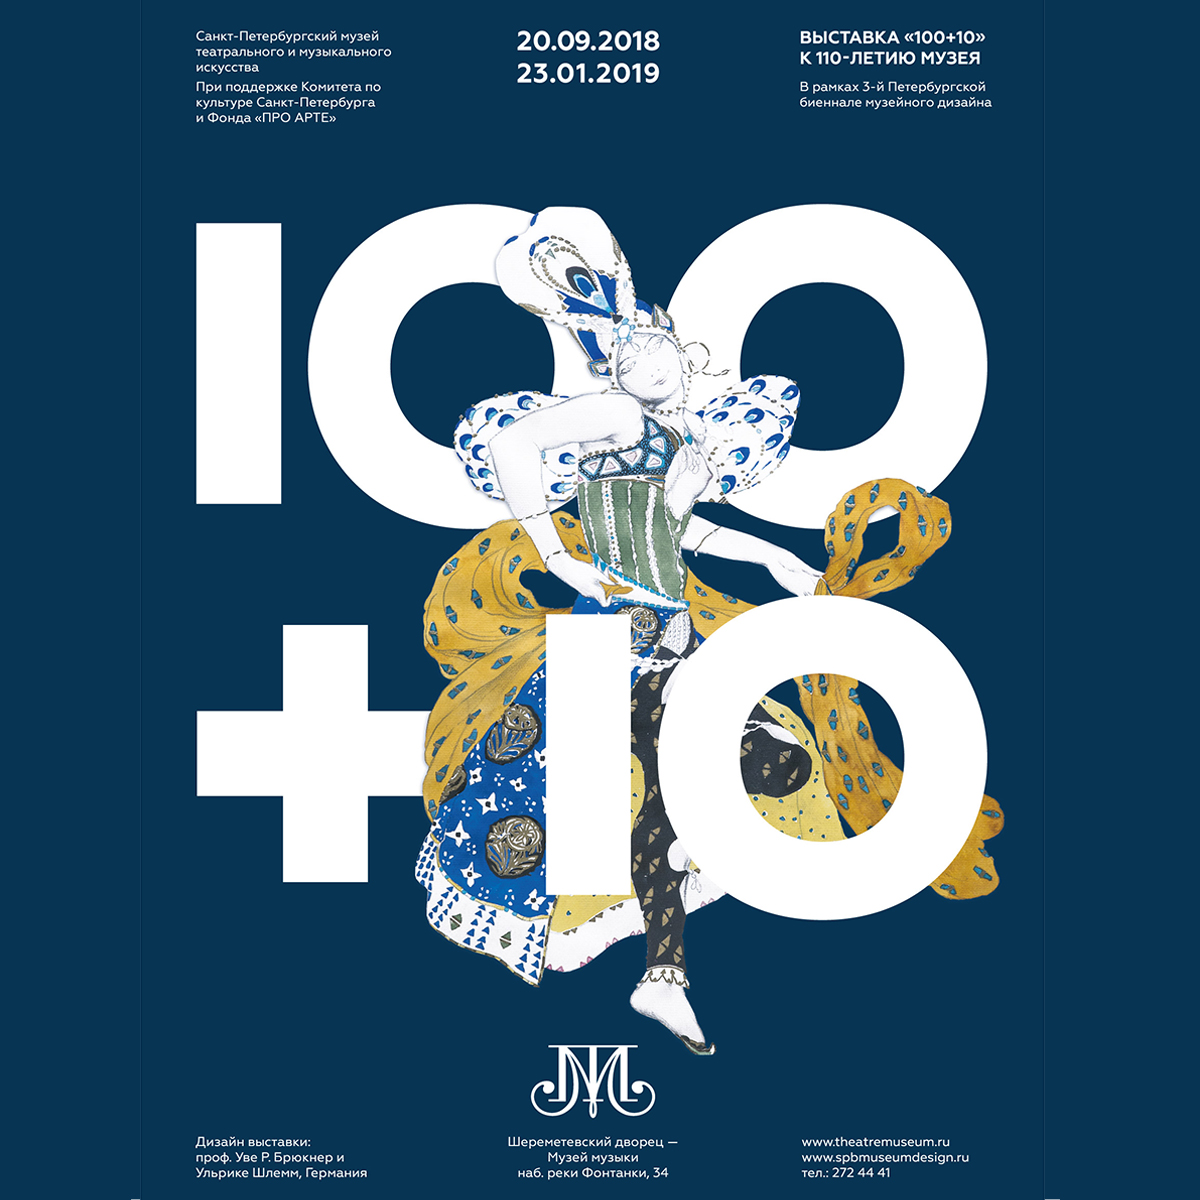 100 10 cover